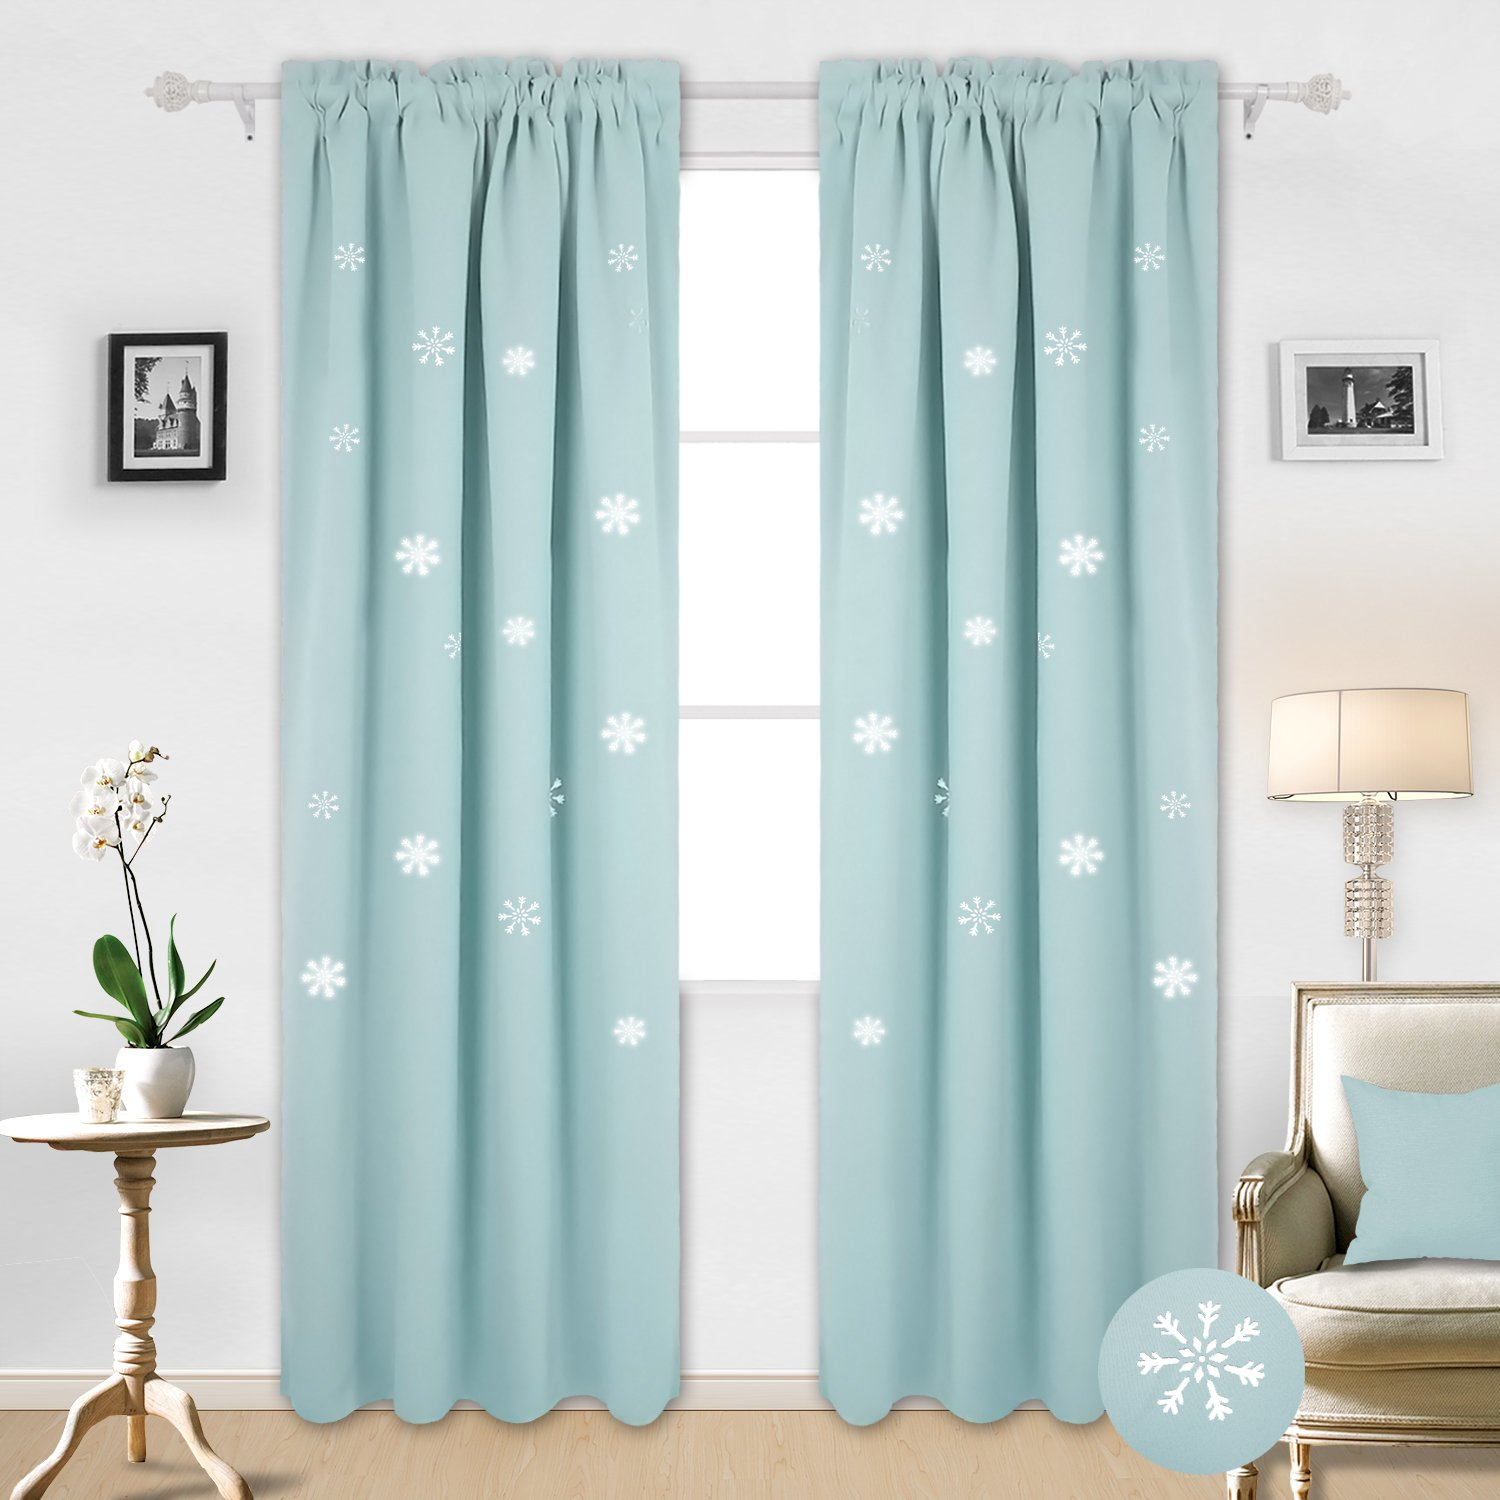 Deconovo Blackout Curtains Gradient Morrocan Pattern Window Drapery Grommet Thermal Insulated Curtains for Bedroom Azure Blue 42W x 63L Inch 1 Panel